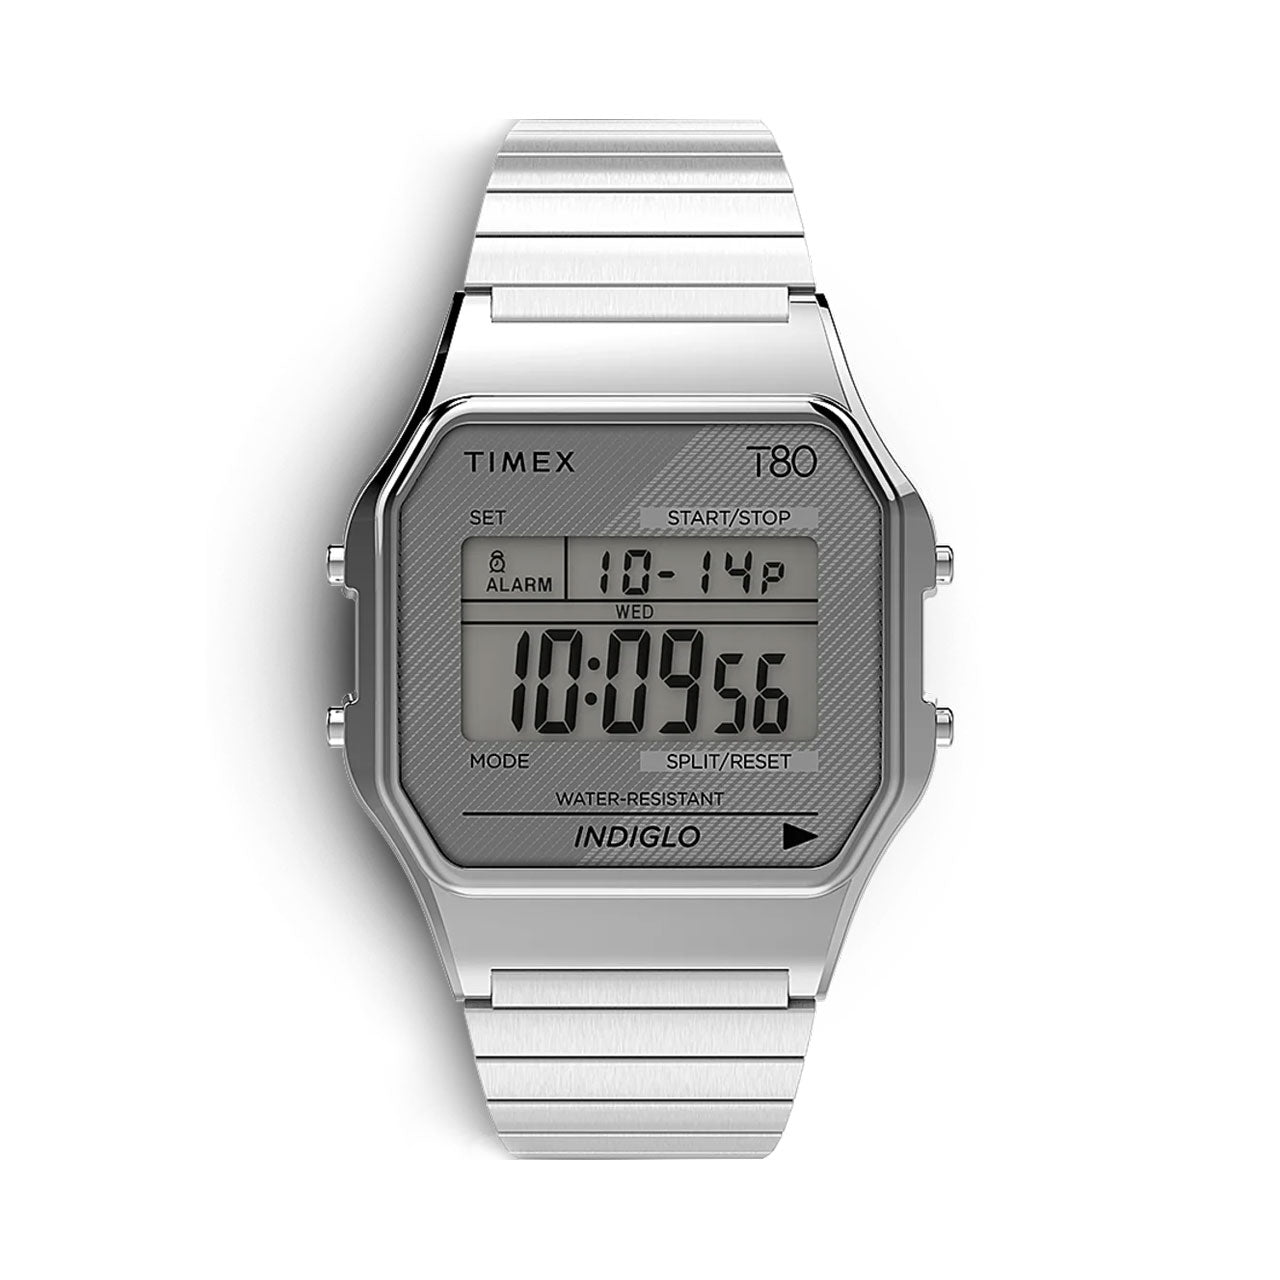 Timex T80 Expansion Band Digital Watch